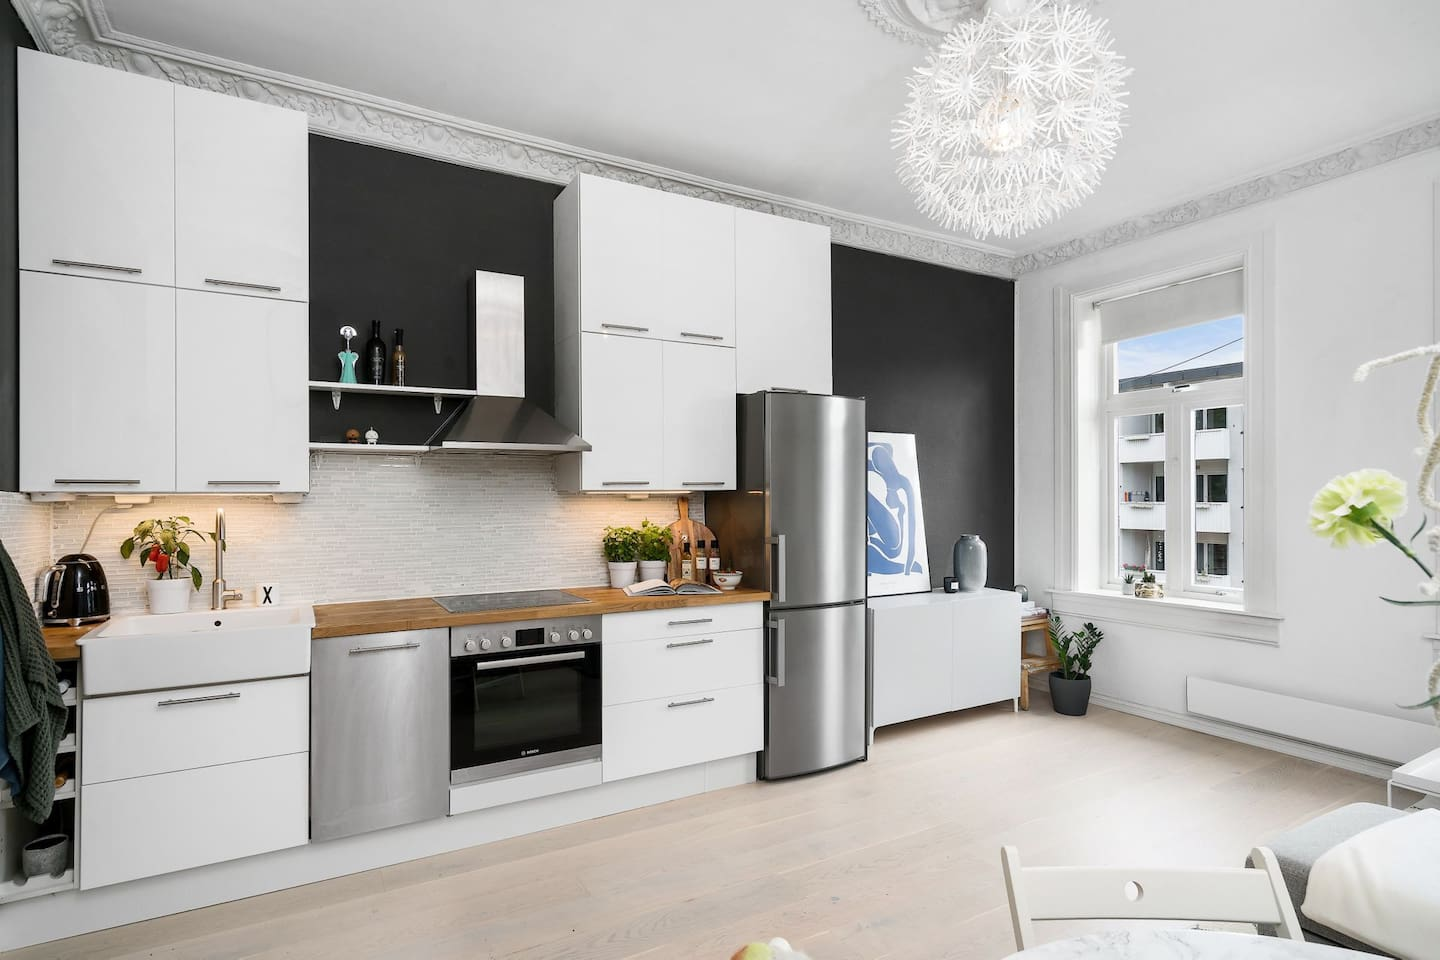 Lovely and spacious living room and kitchen. High 3 meter ceiling in the whole apartment.